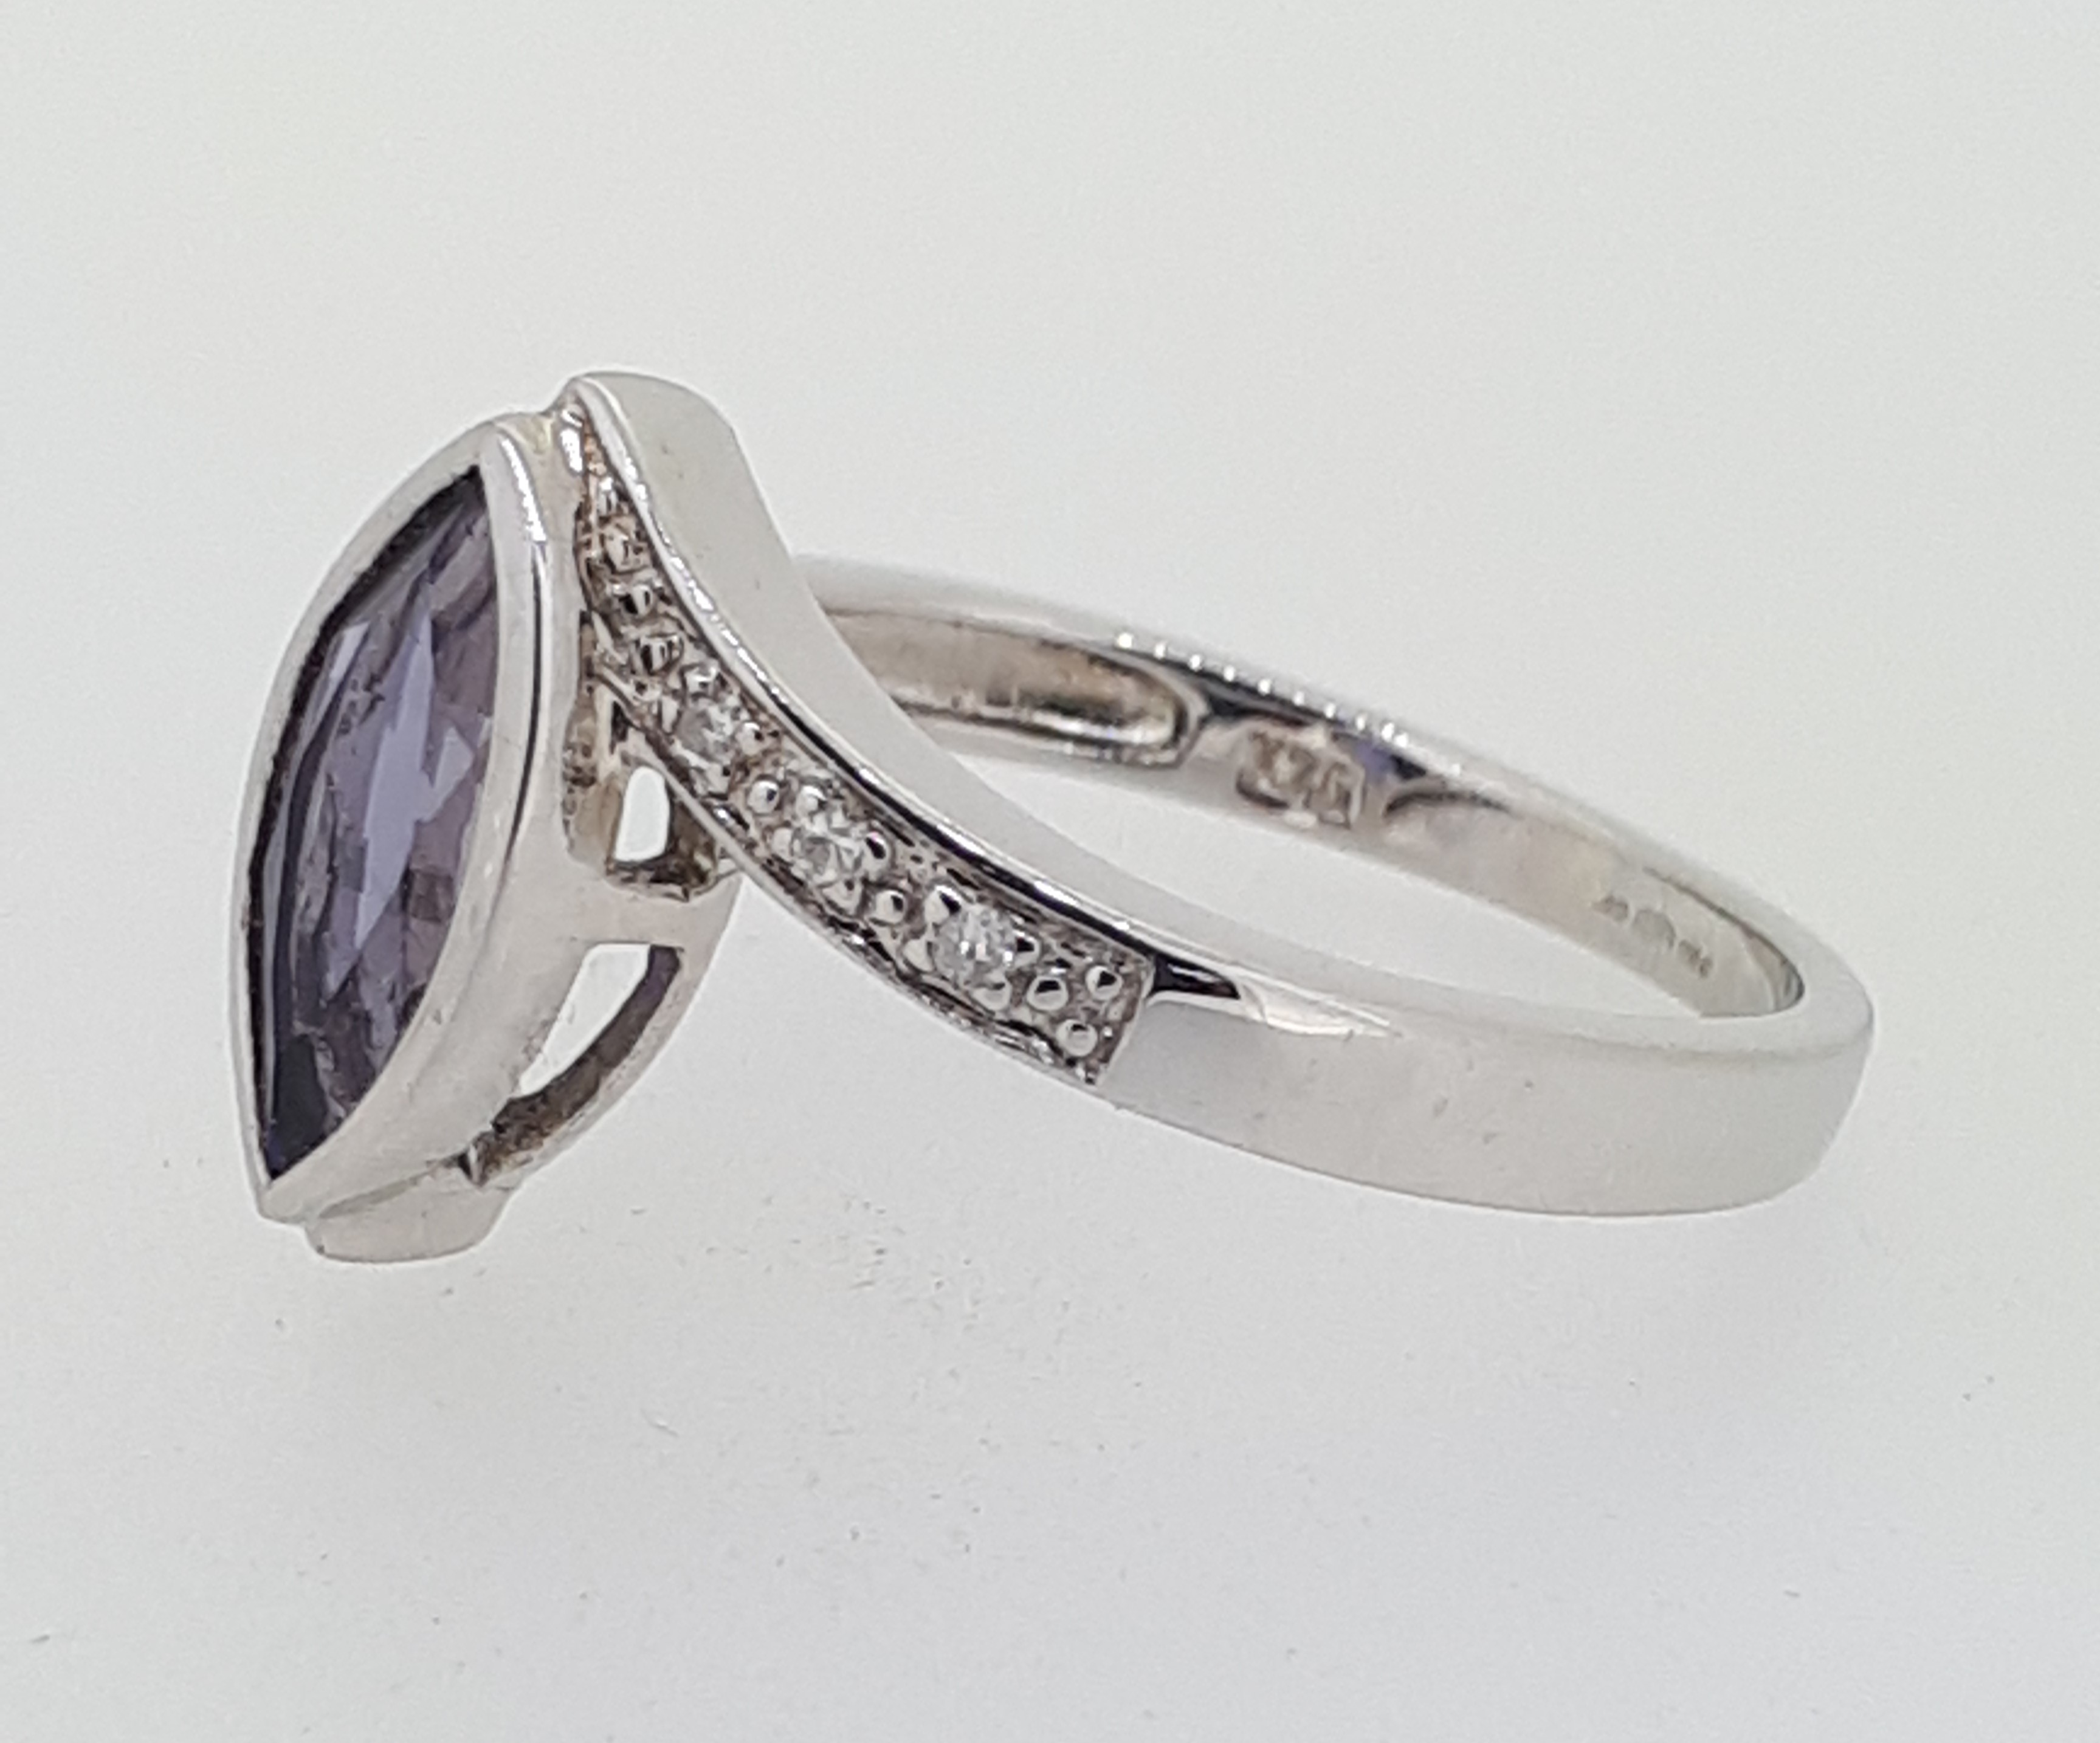 9ct (375) White Gold Diamond & Marquise Iolite Crossover Ring - Image 4 of 5